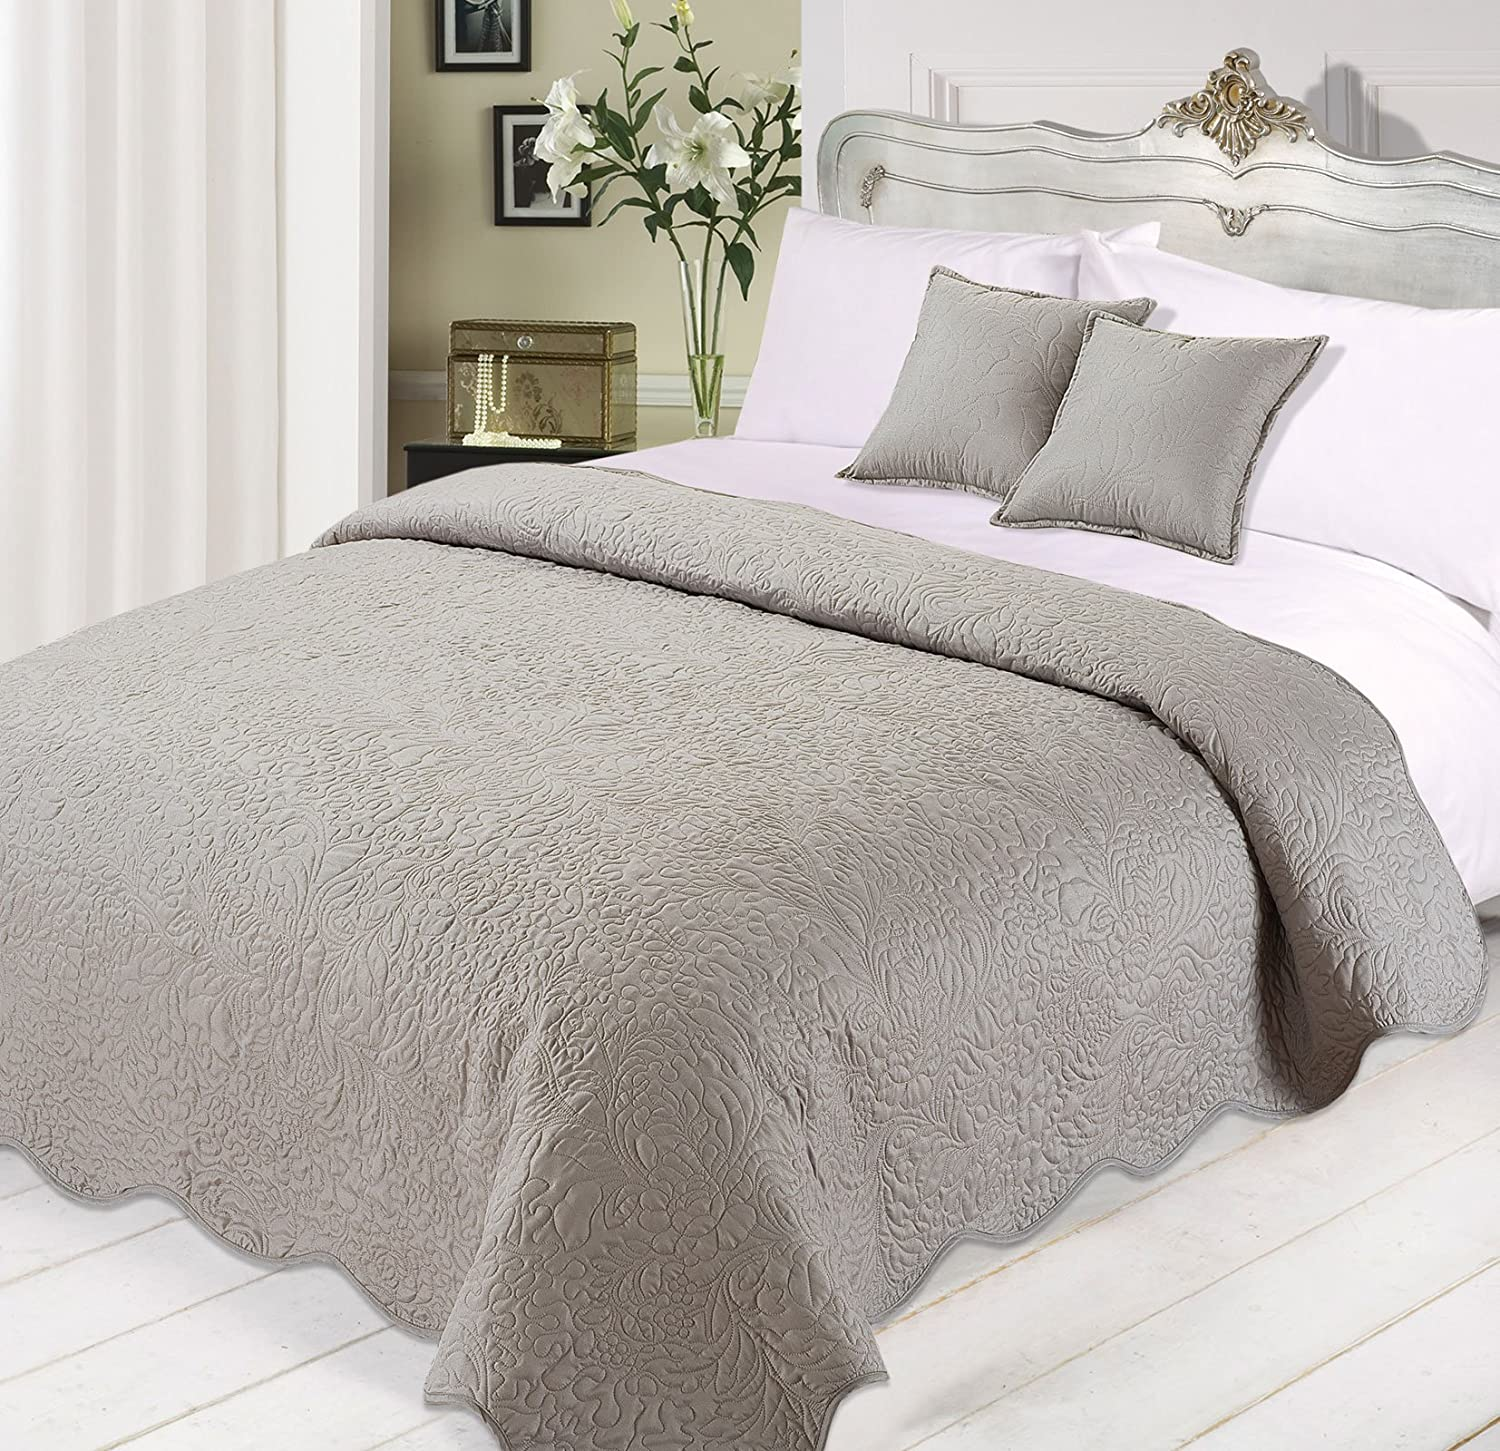 Polyester 3-Piece Silver Dreamscene Luxurious Quilted Bedspread Comforter Cushions Set